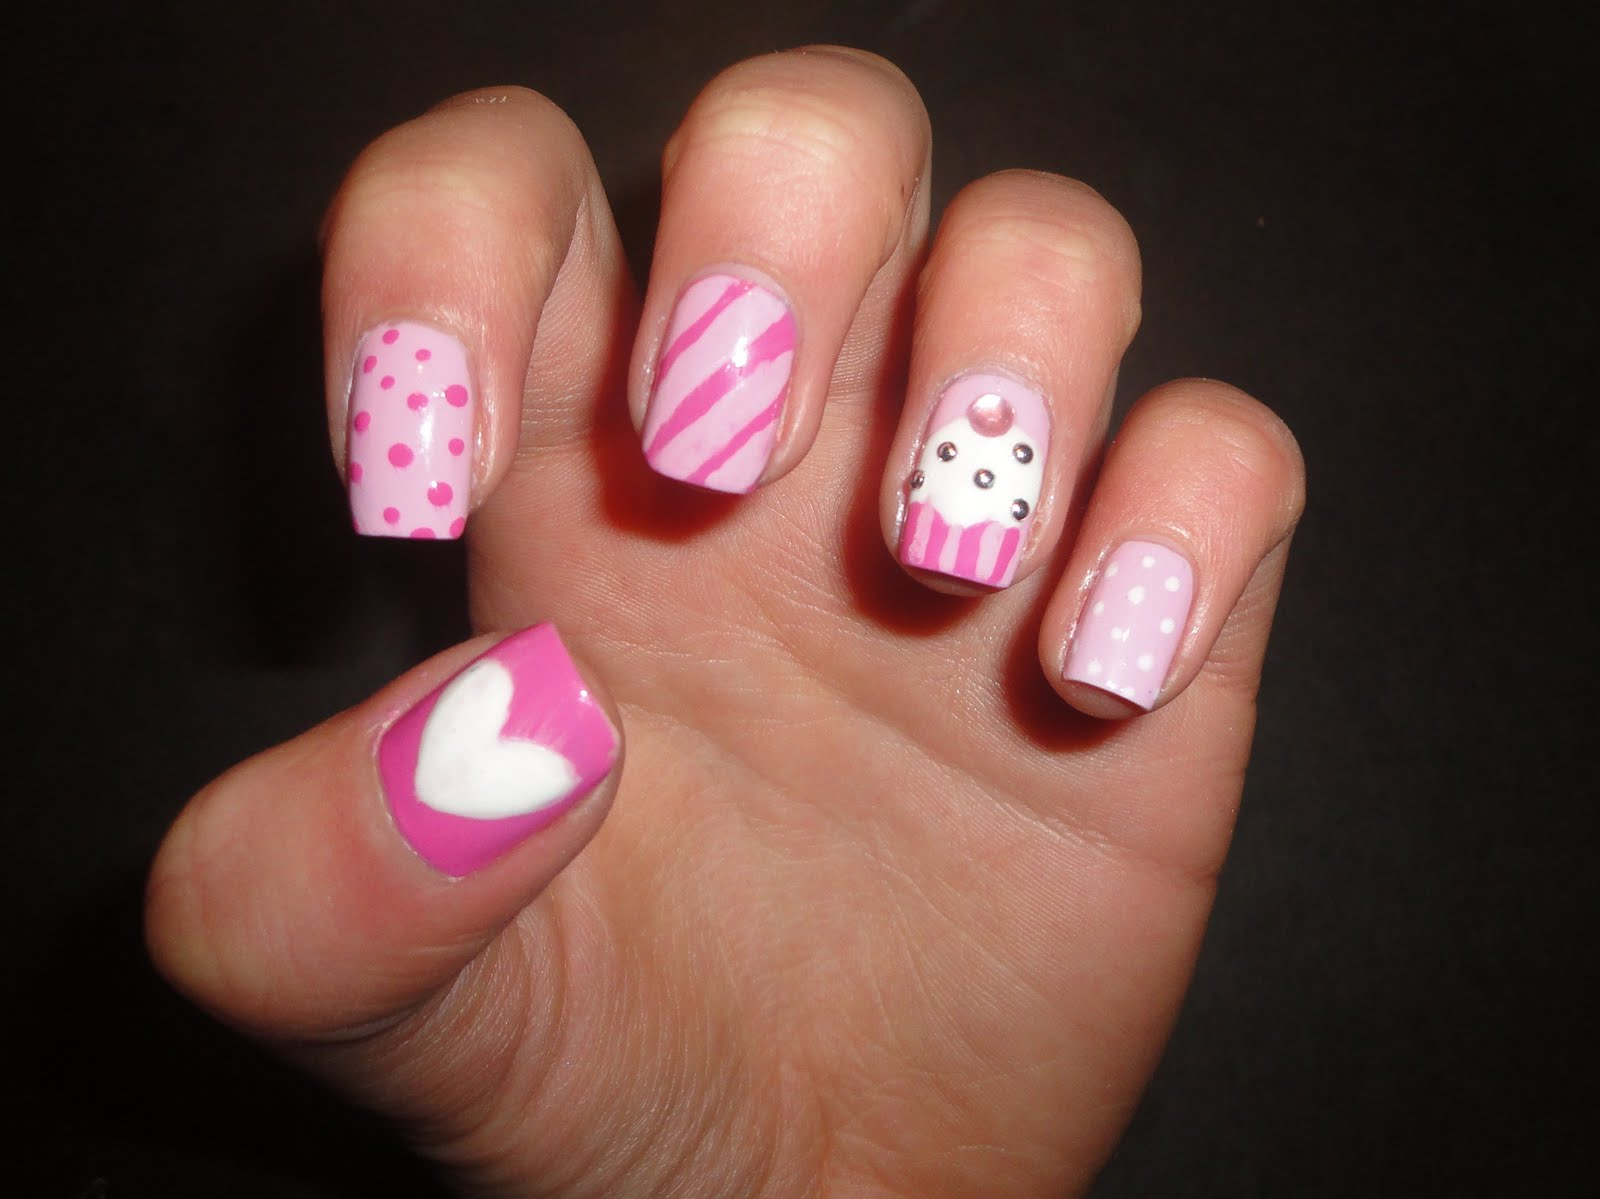 Cute Toe Nail Designs Tumblr